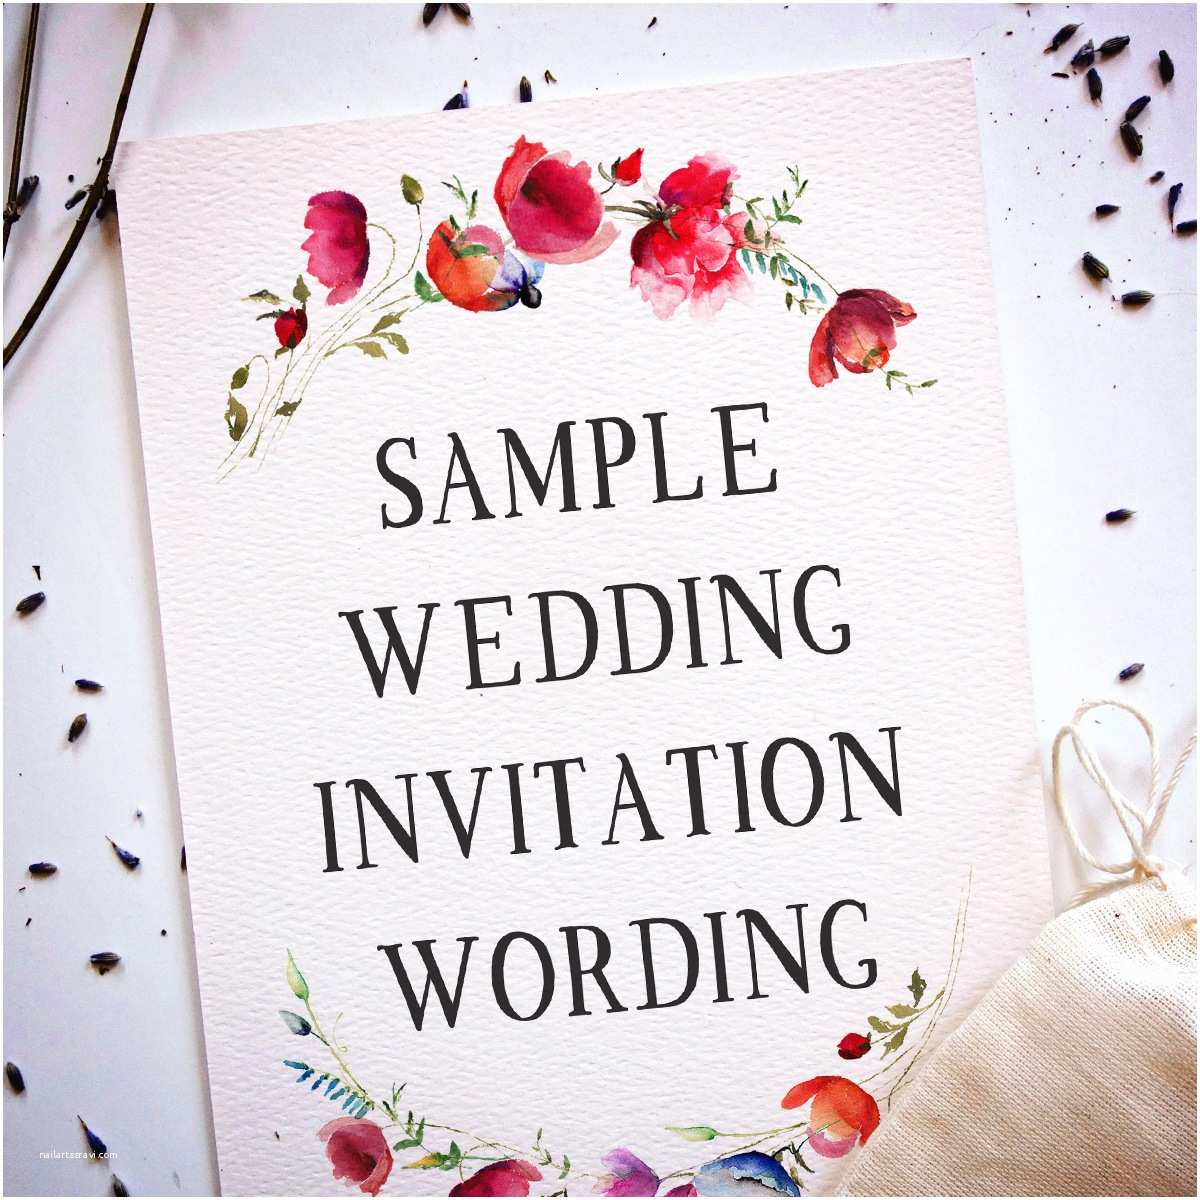 Sample Wedding Invitations Wedding Invitation Wording Samples From Traditional to